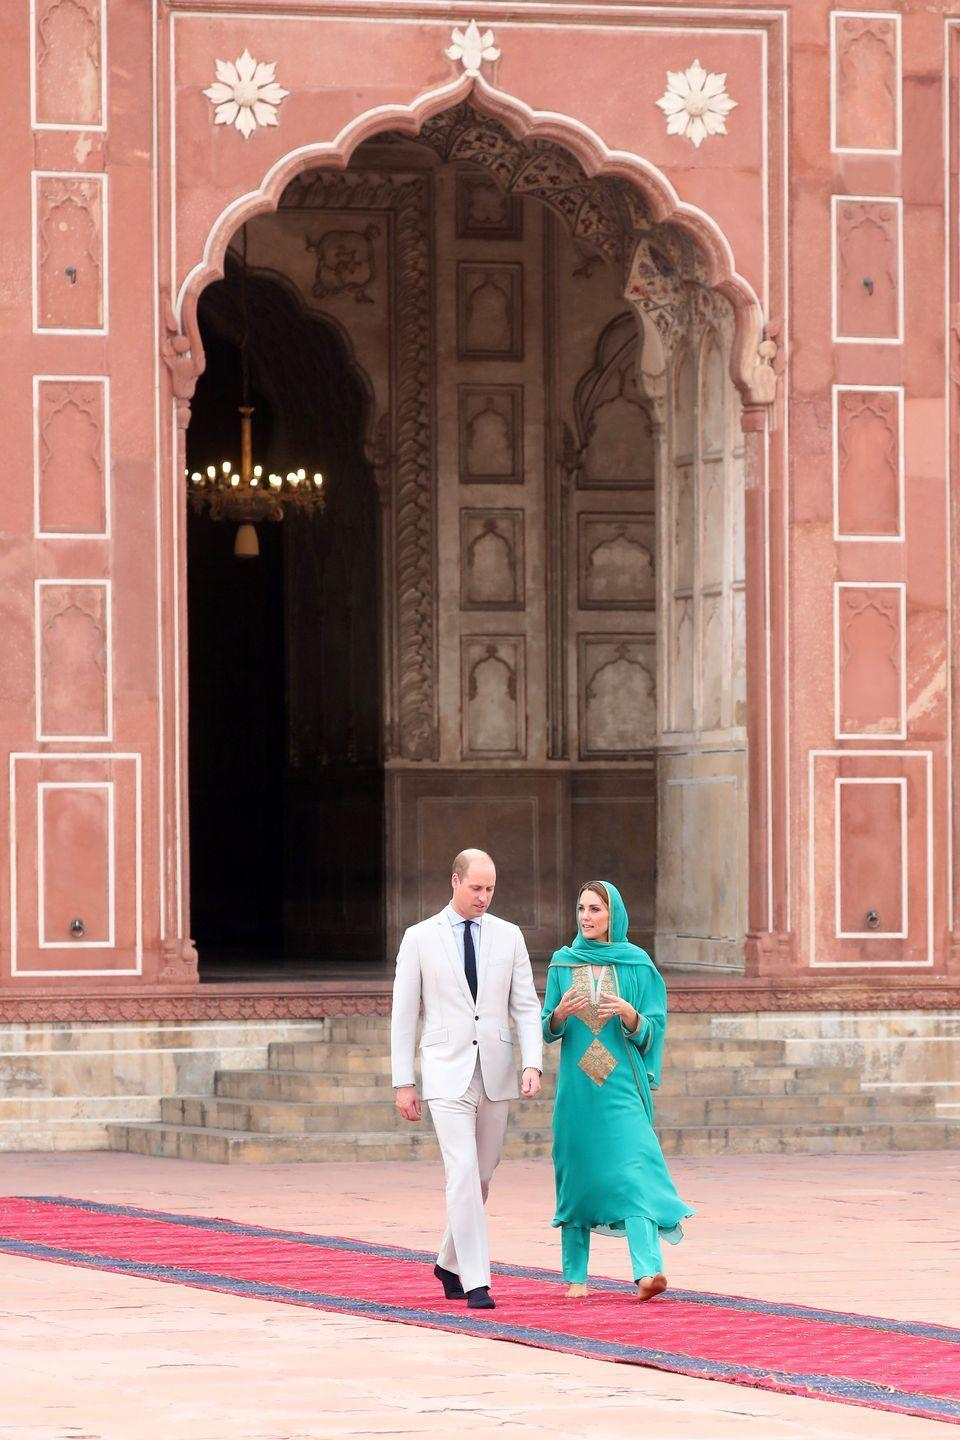 <p>While visiting Pakistan on an official royal tour, Kate Middleton and Prince William visited the Badshahi Mosque within the Walled City of Lahore. The couple adhered to the mosque's dress code and removed their shoes before entering. </p>